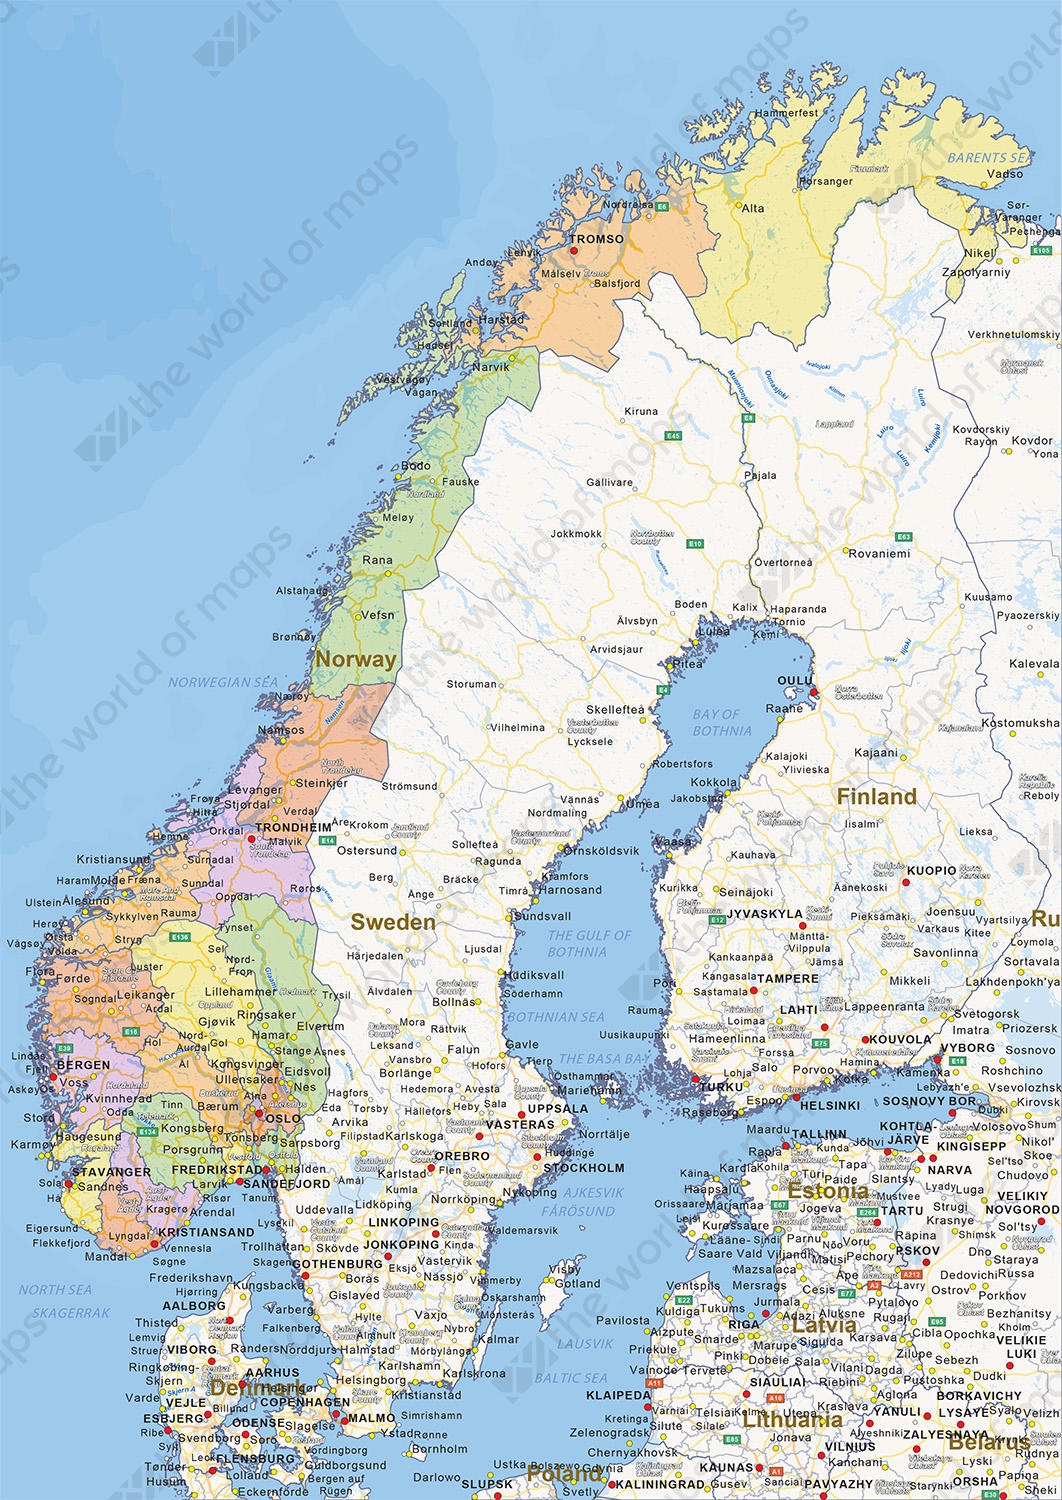 Digital political map of Norway 1454 | The World of Maps.com